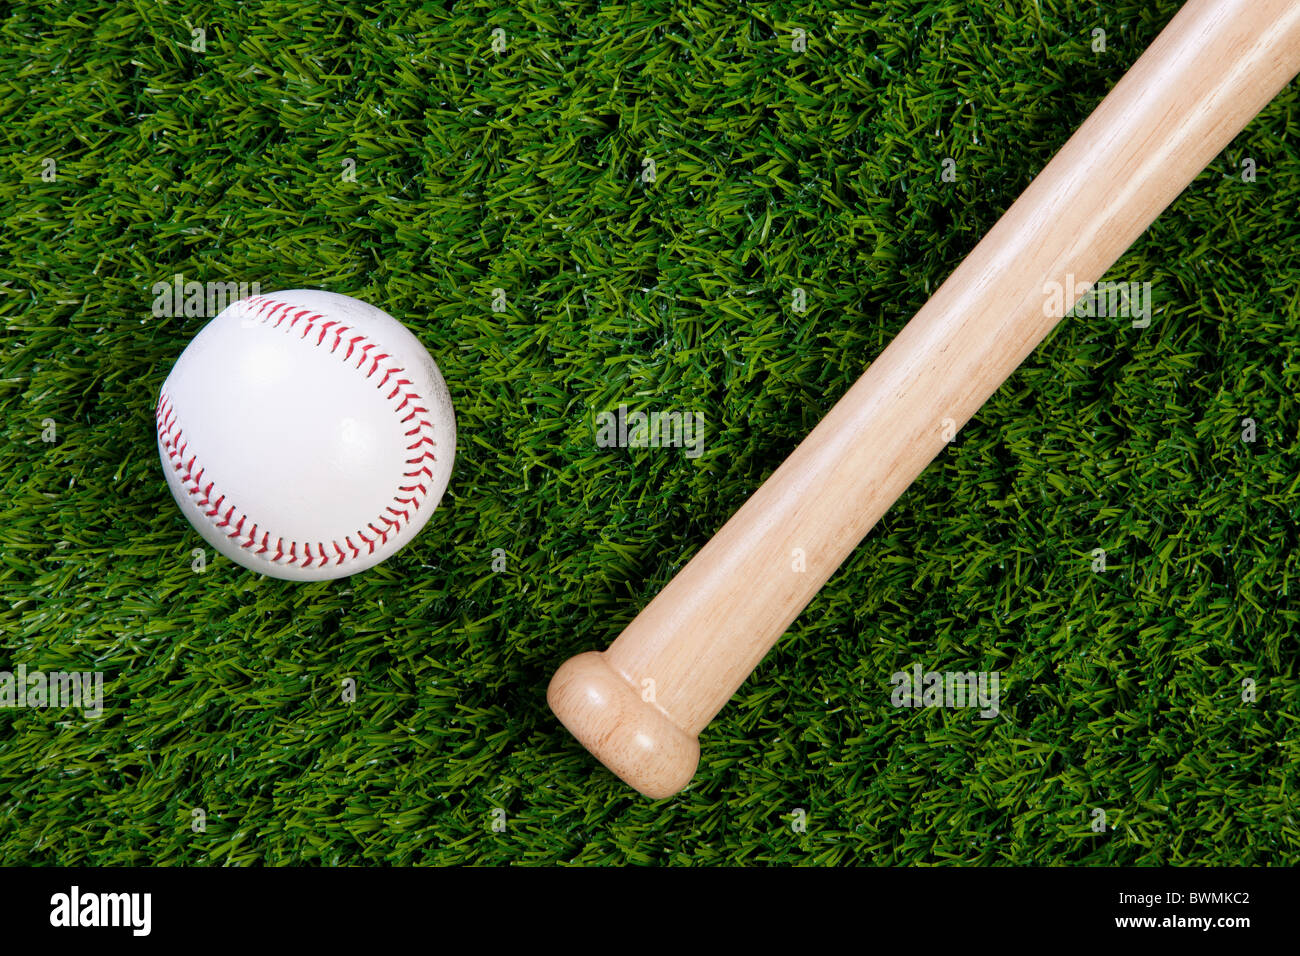 Photo d'un base-ball et coffret bois bat sur l'herbe Photo Stock